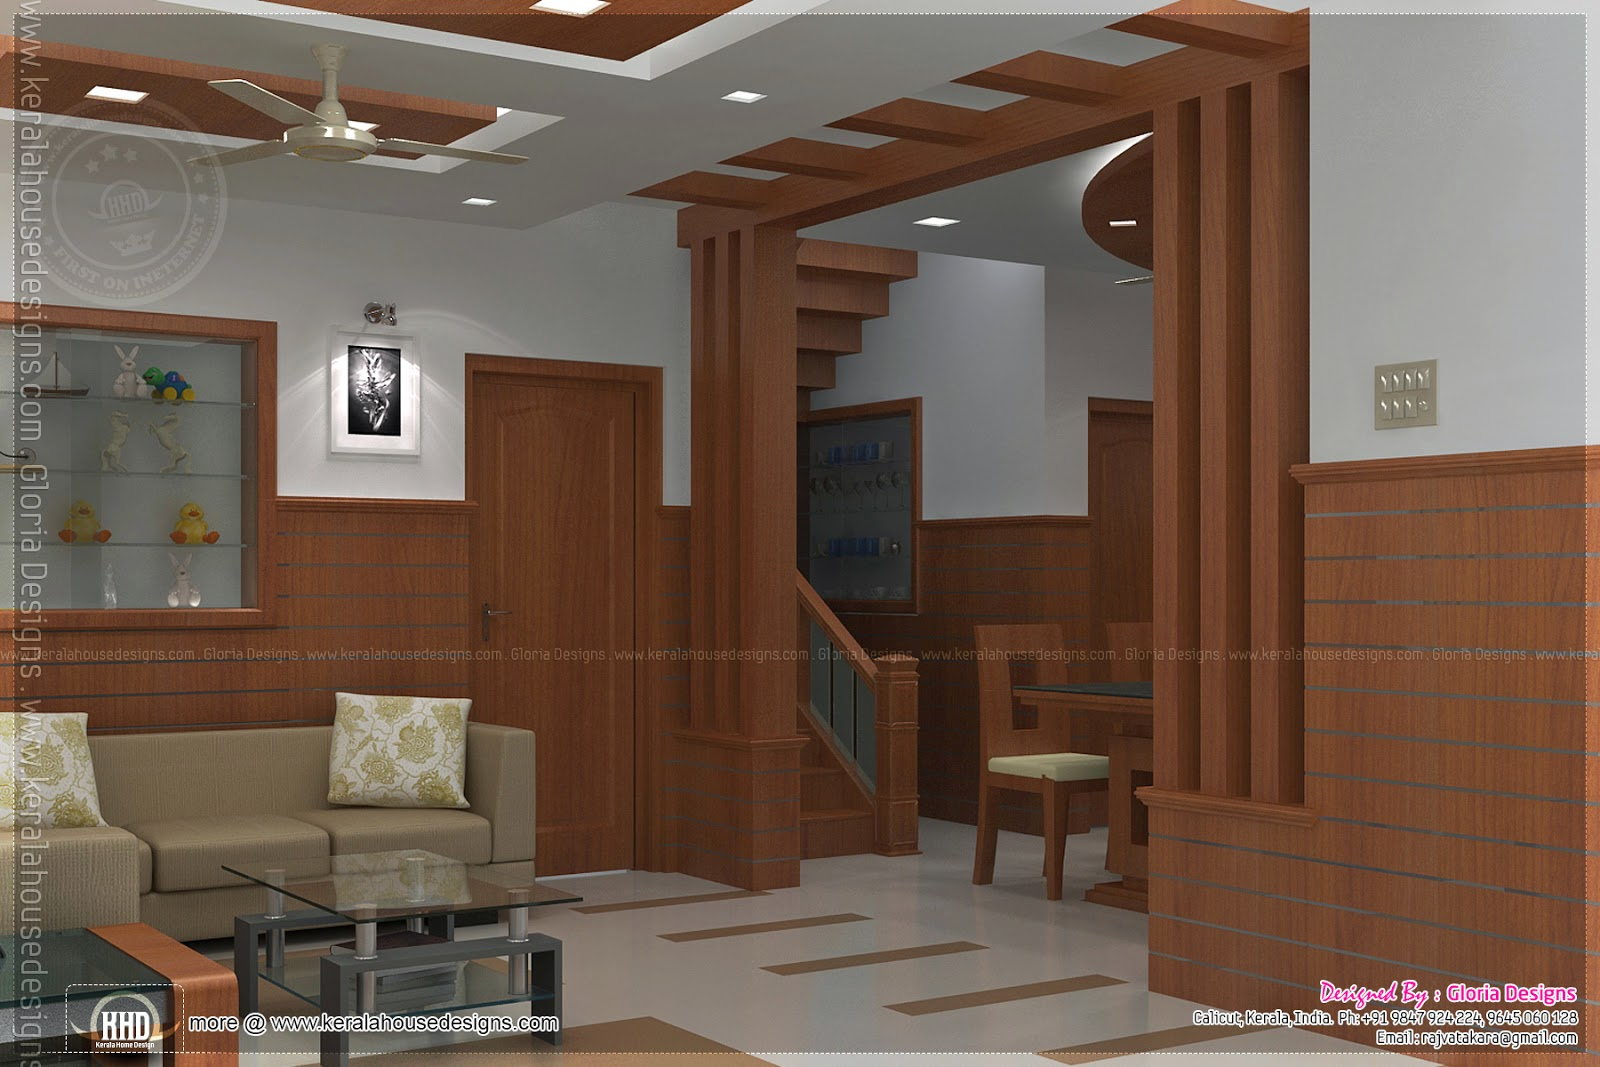 Home interior design kerala for Kerala home interior